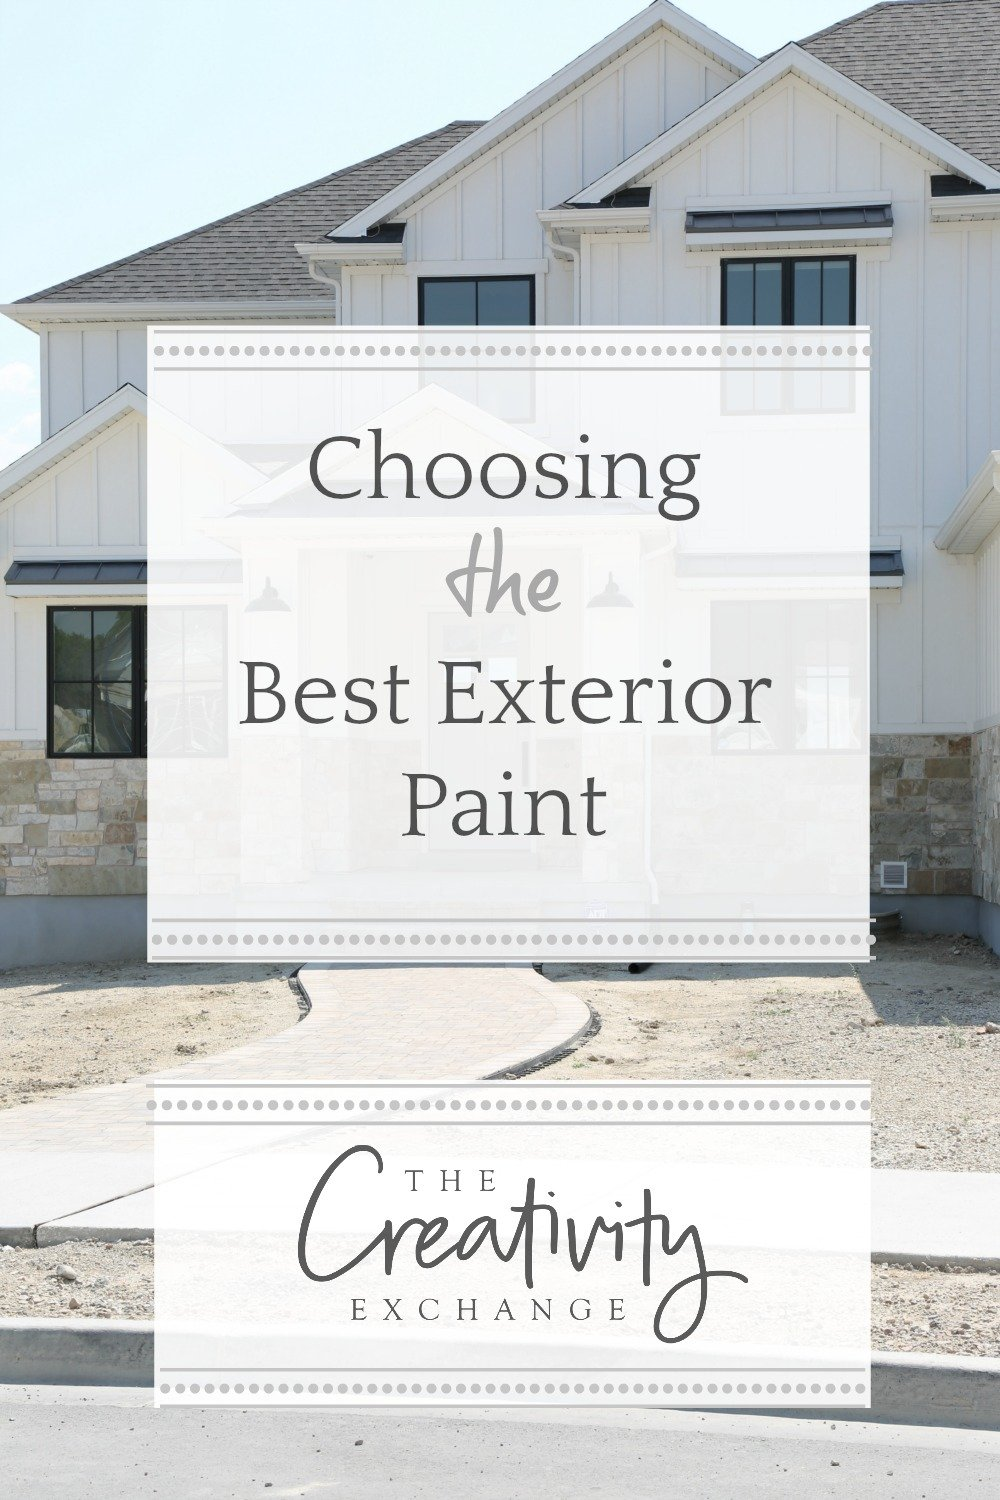 Tips for choosing the best exterior paints for the job